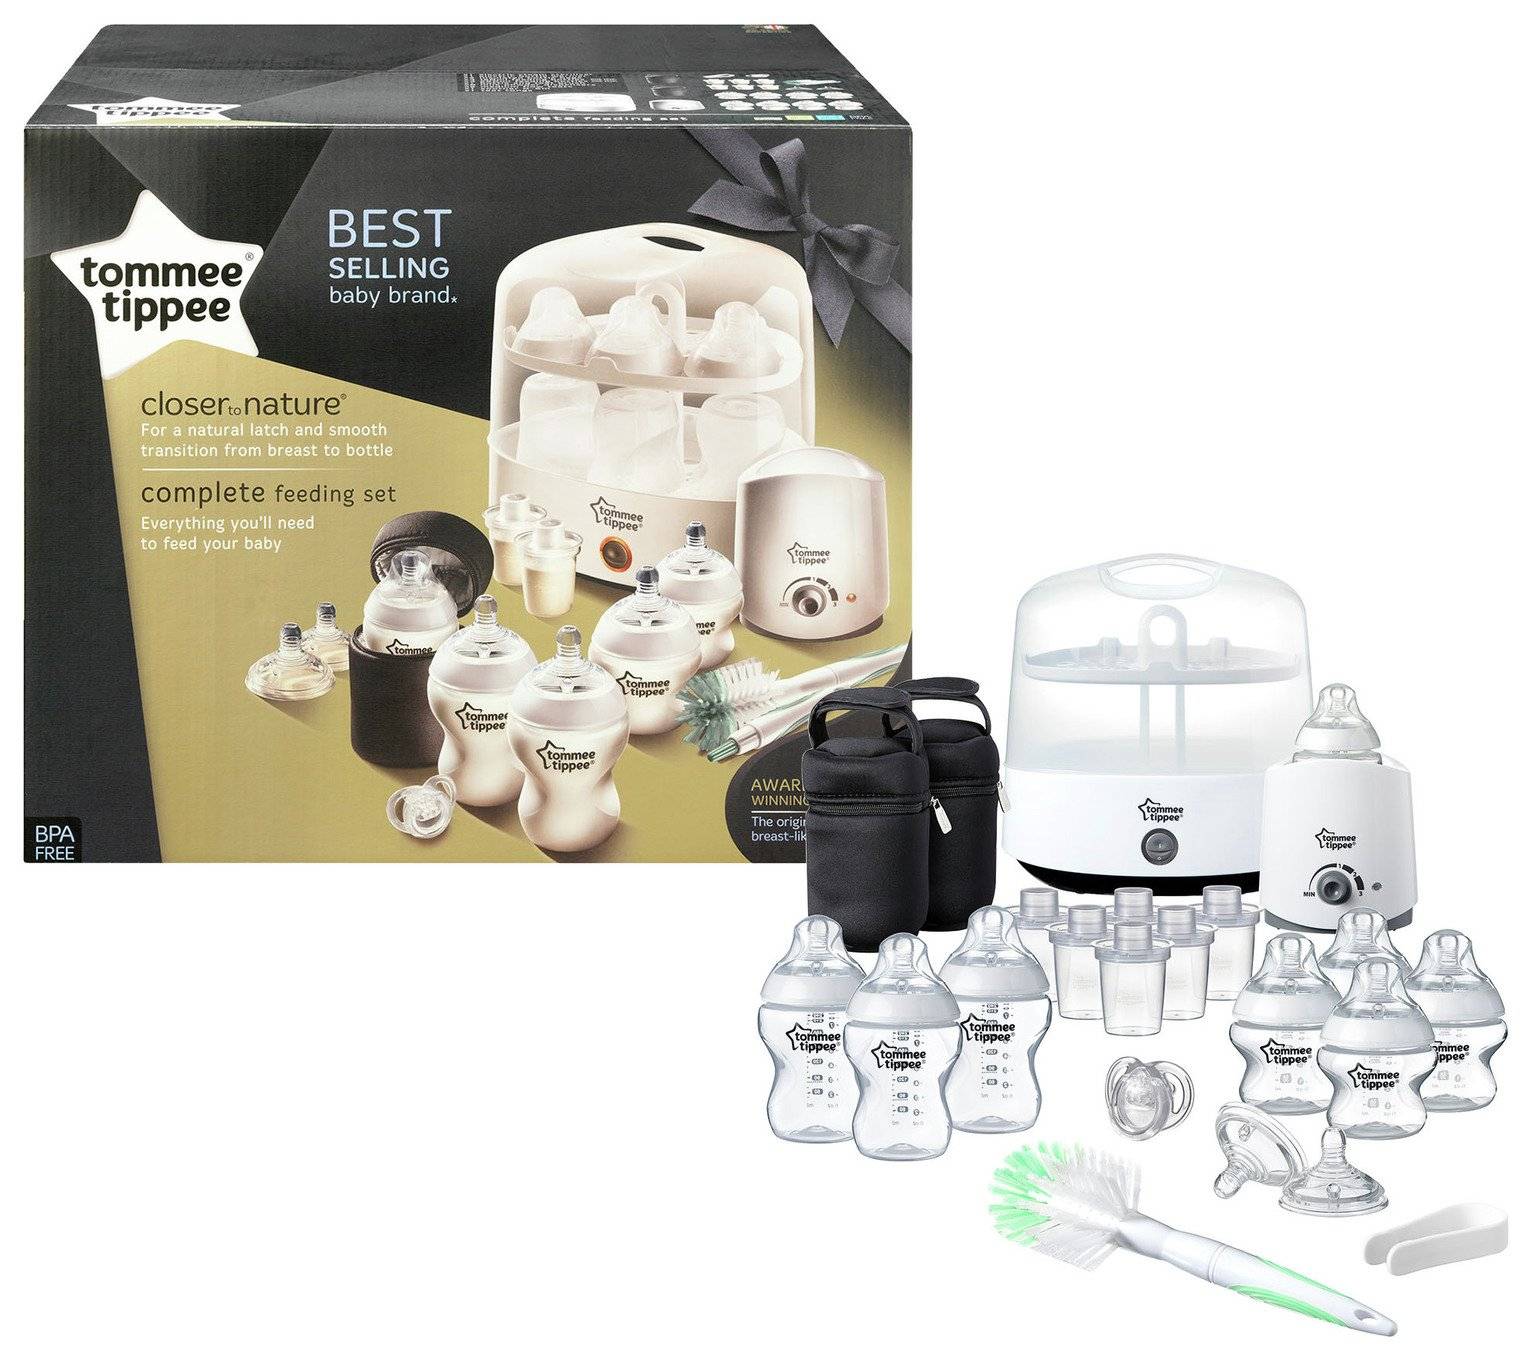 Tommee Tippee - Essentials Starter Kit